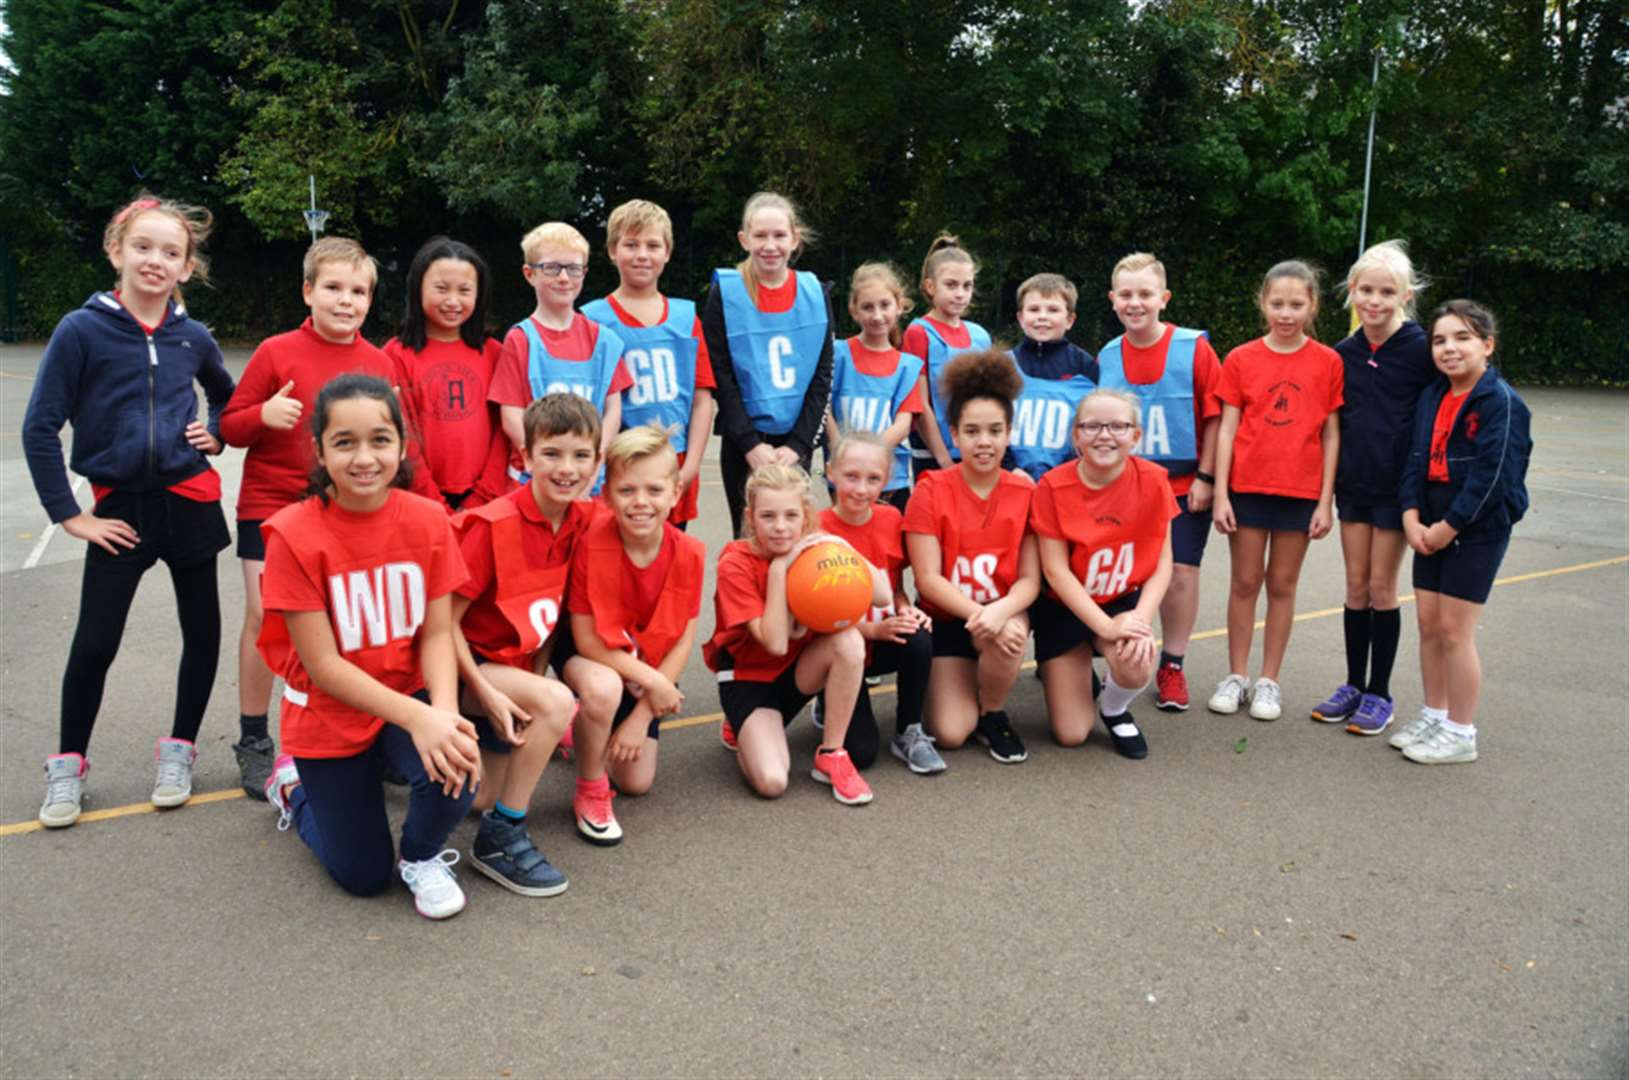 Netball fun at Crowland's South View Primary School